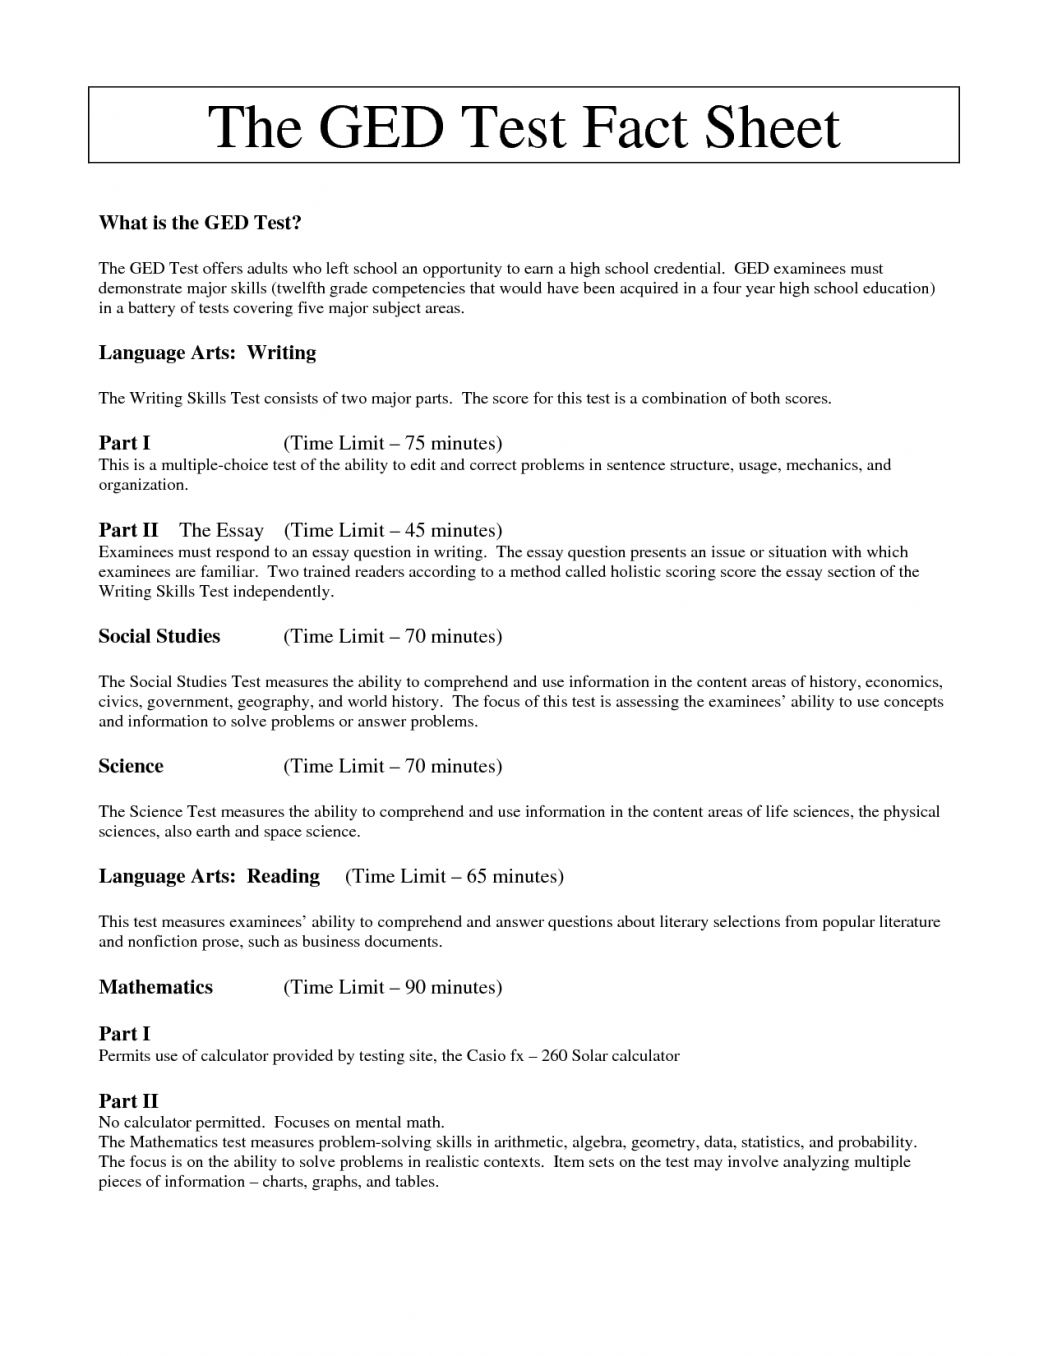 ged essay examples 2019